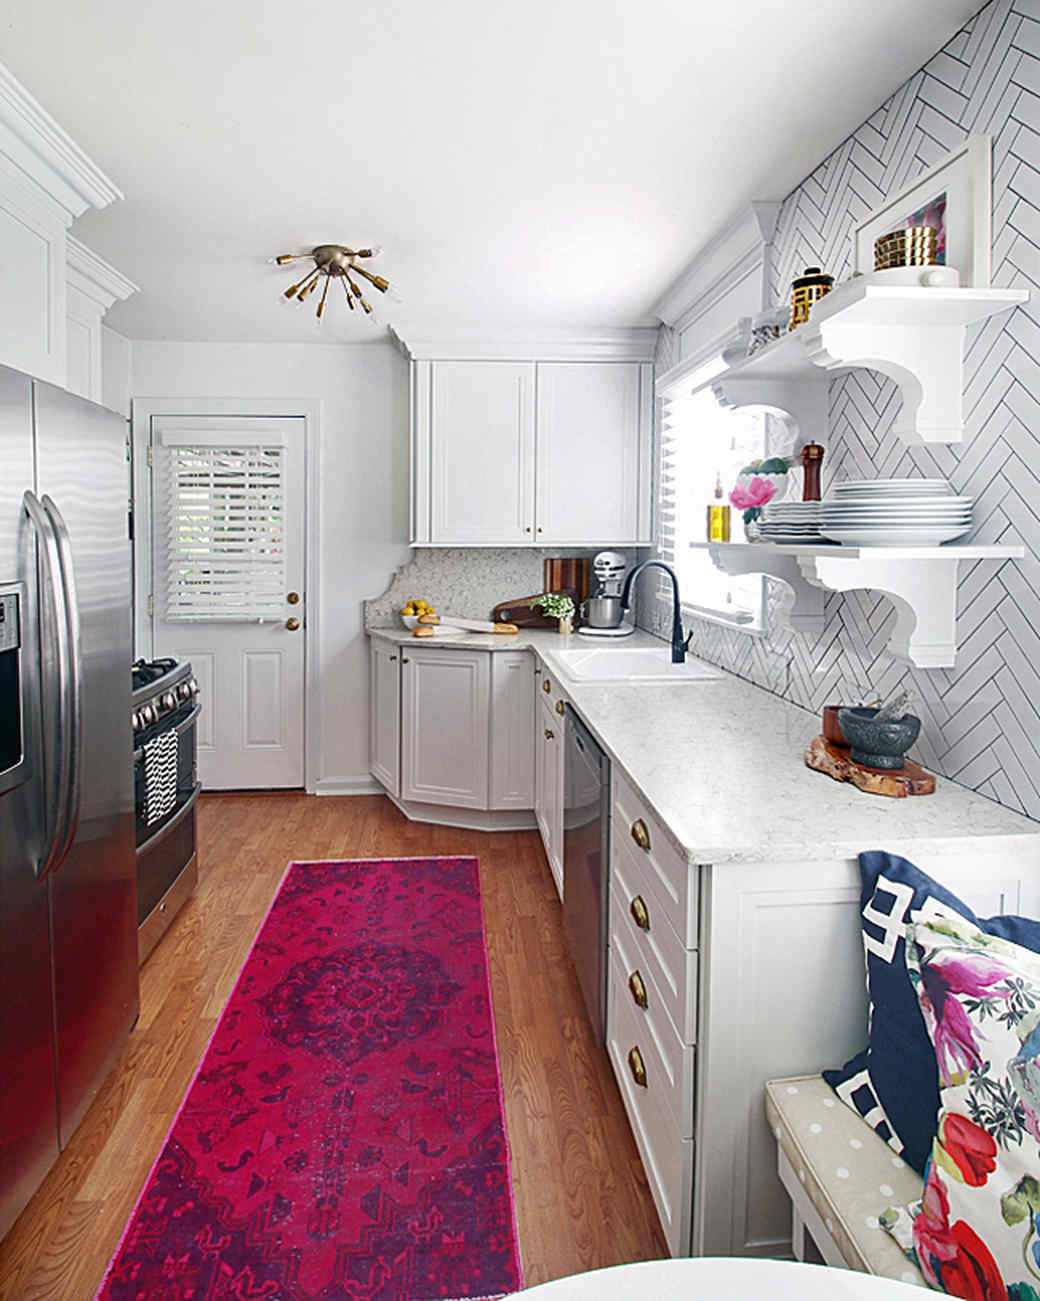 6 bright kitchen lighting ideas: see how new fixtures totally